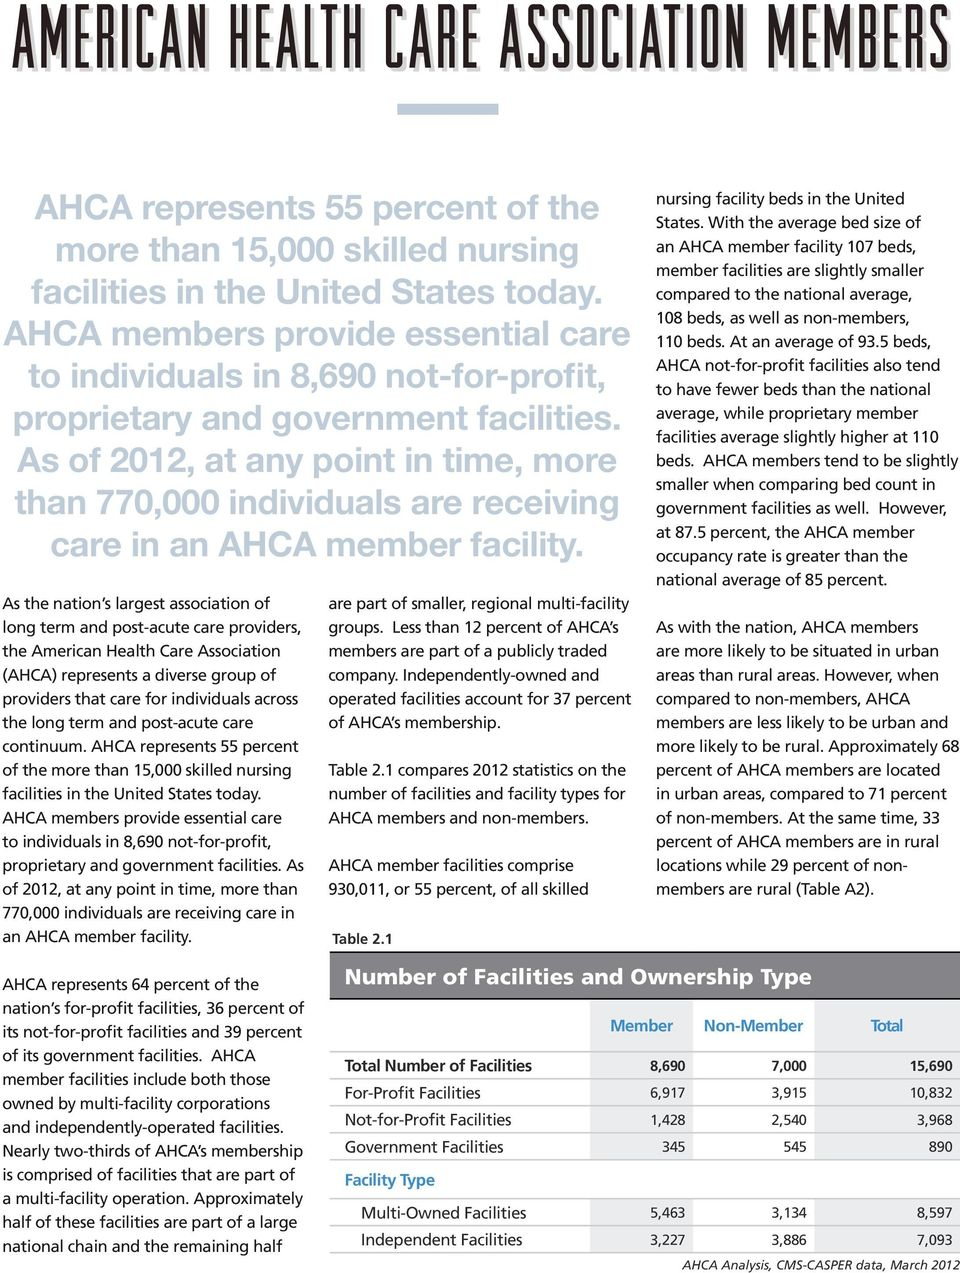 As of 2012, at any point in time, more than 770,000 individuals are receiving care in an AHCA member facility.